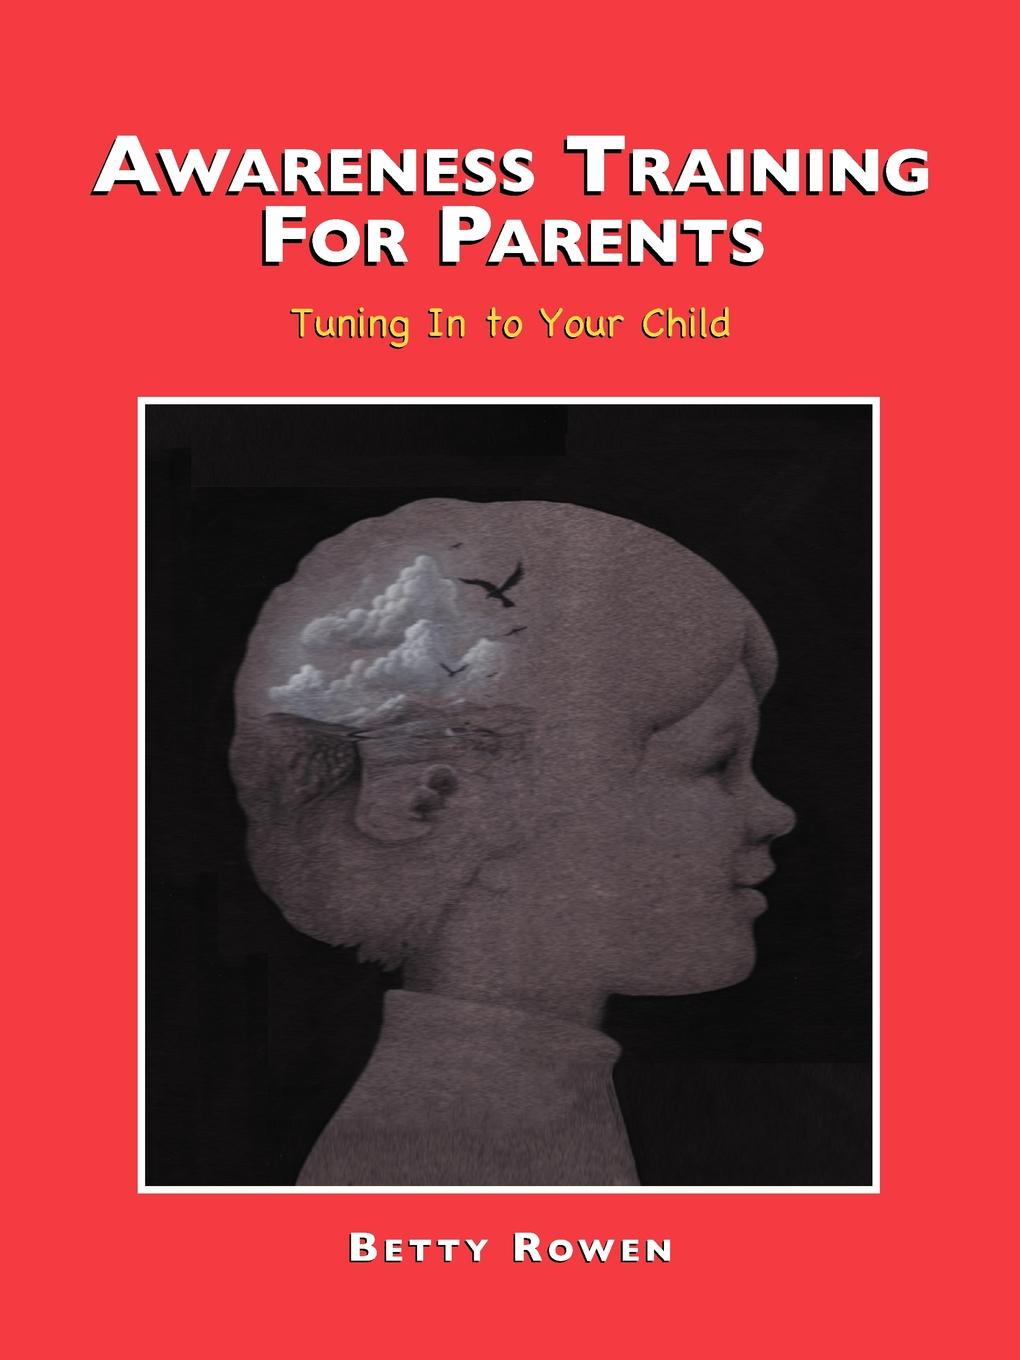 Tuning Into Your Child: Awarness Training for Parents